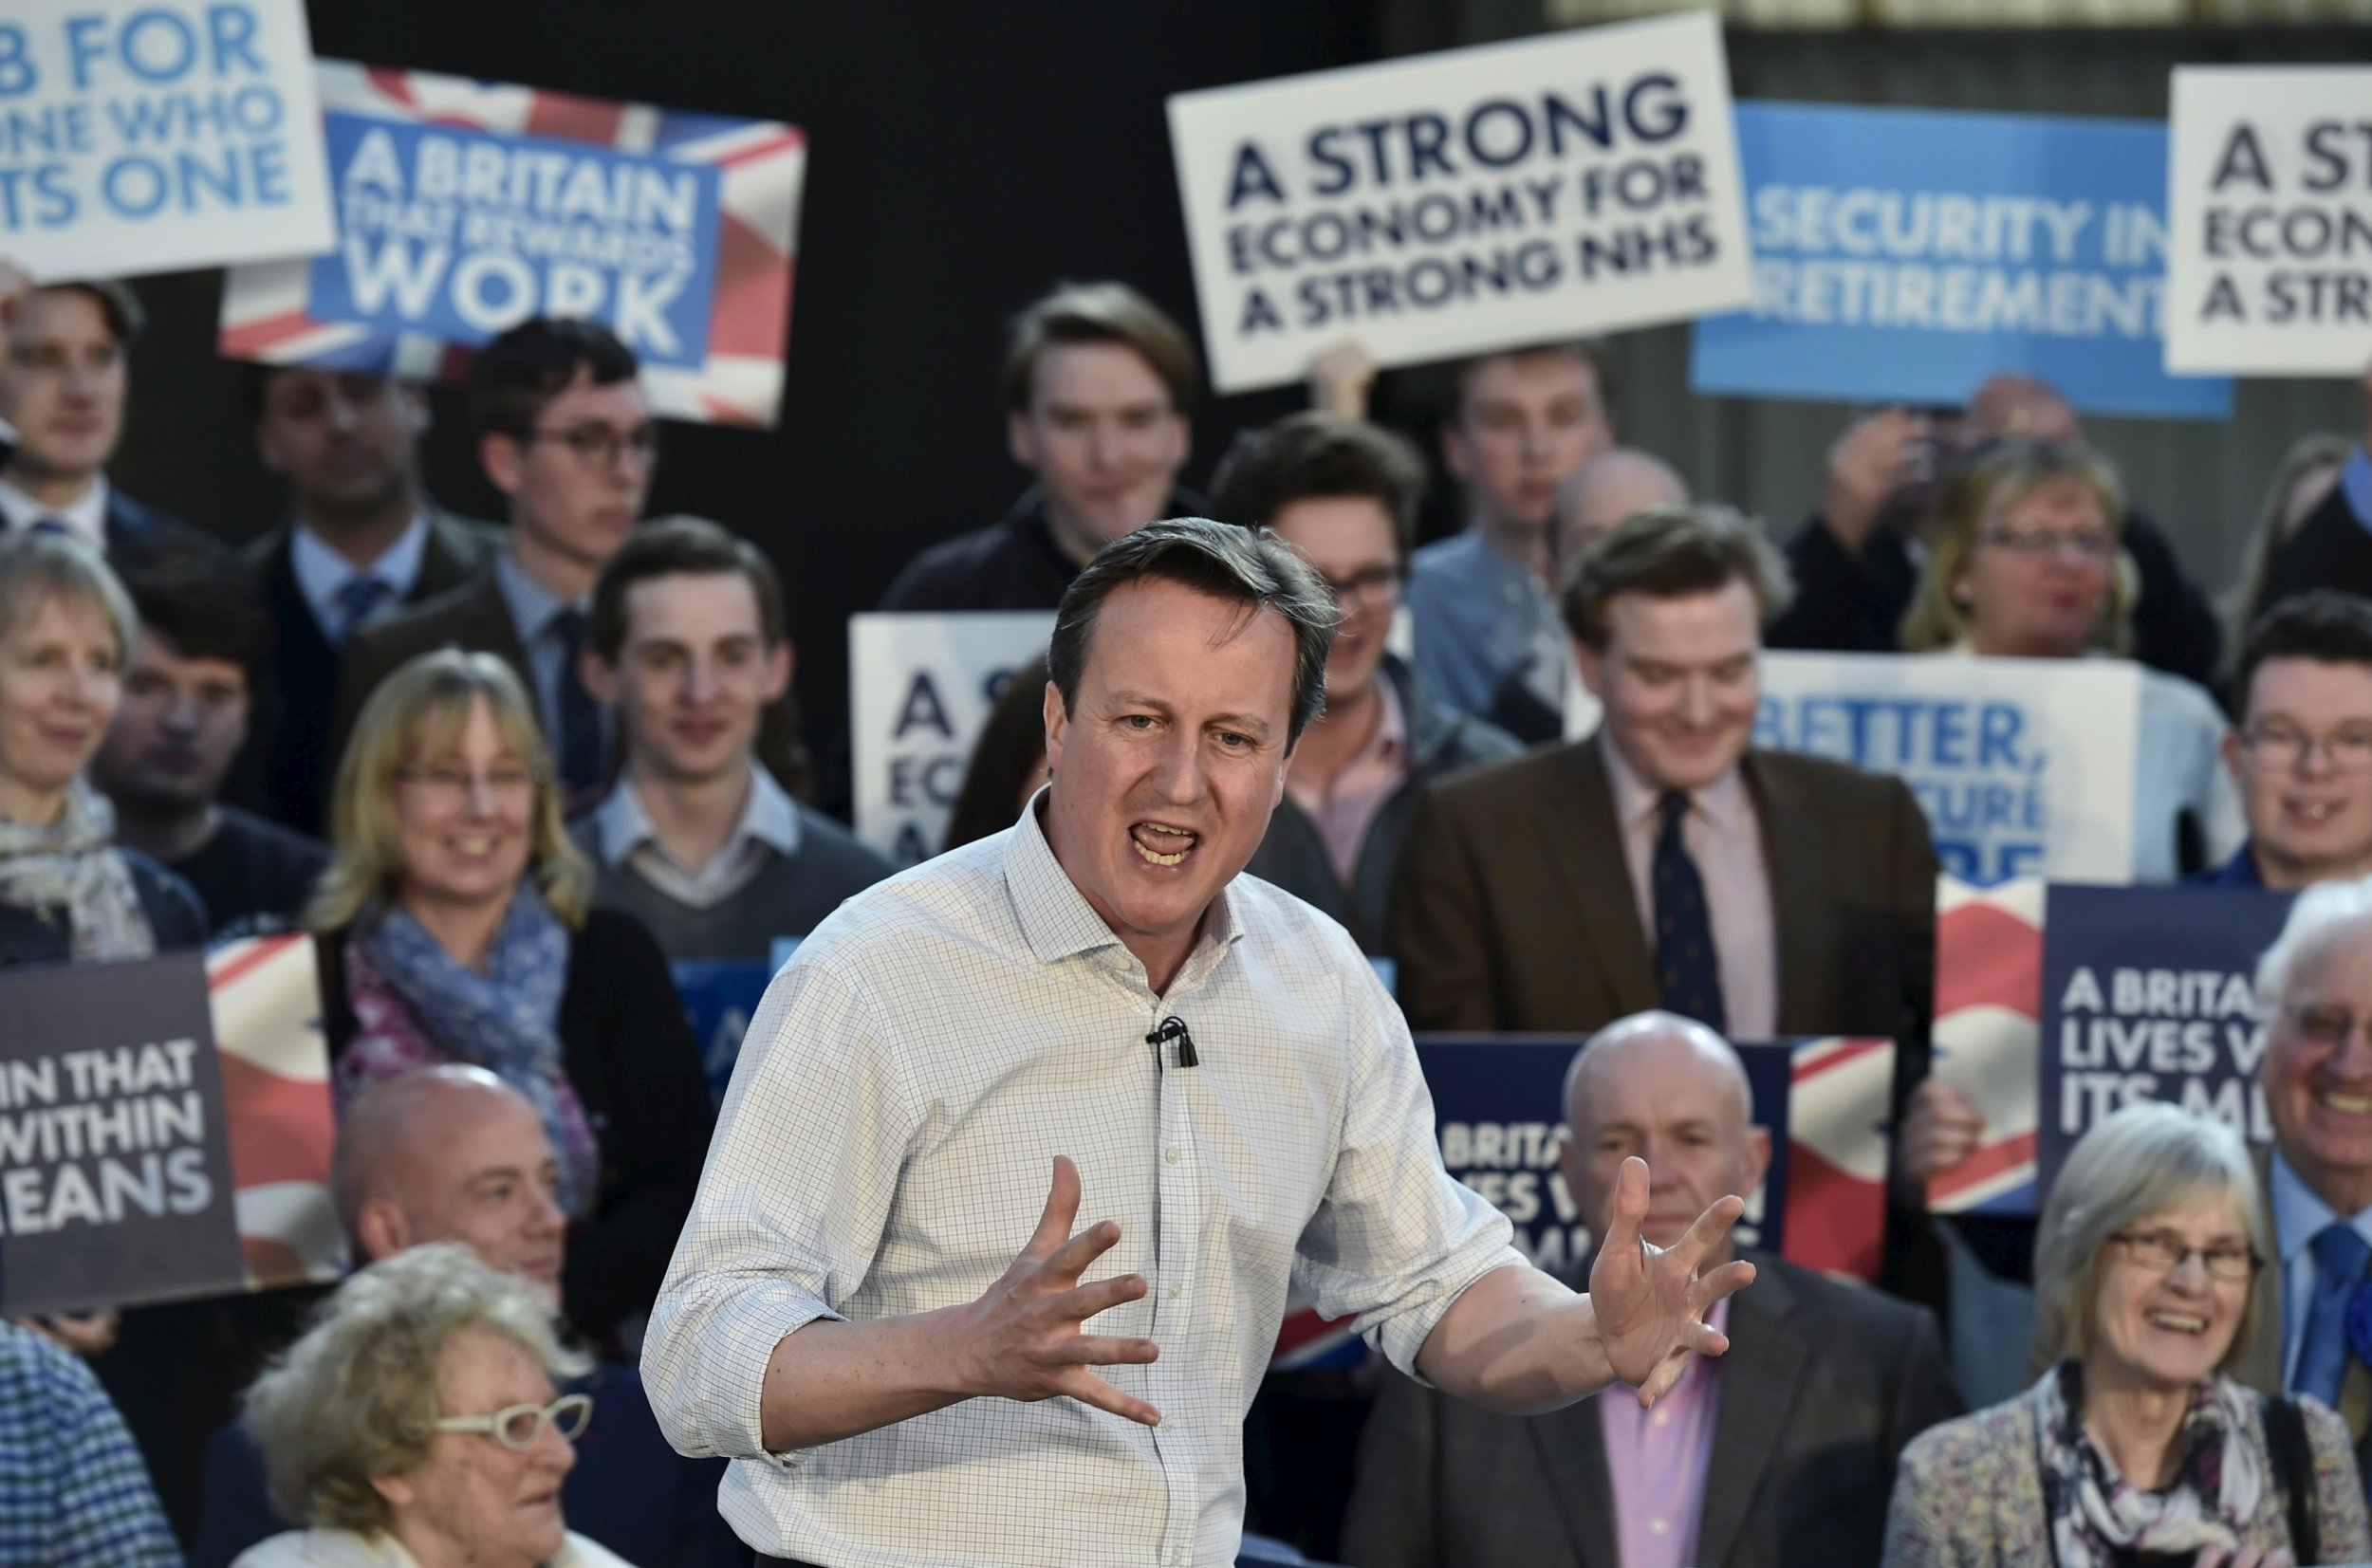 what does brexit mean for party politics